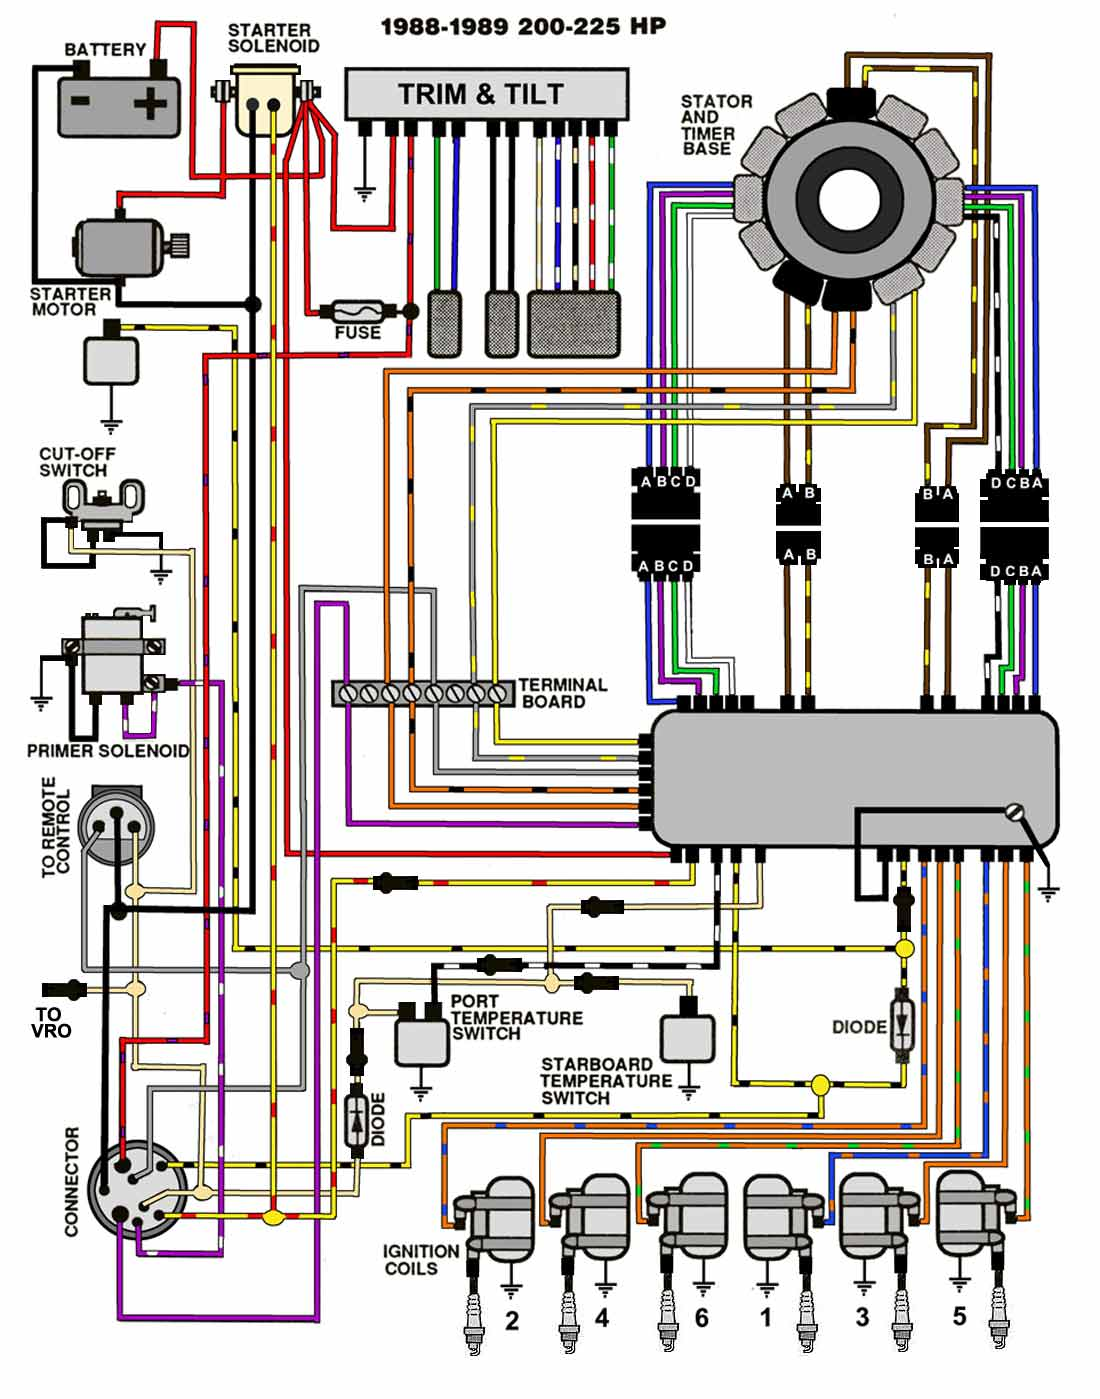 1988_89_200_225 johnson outboard wiring diagram wiring diagram byblank  at mifinder.co